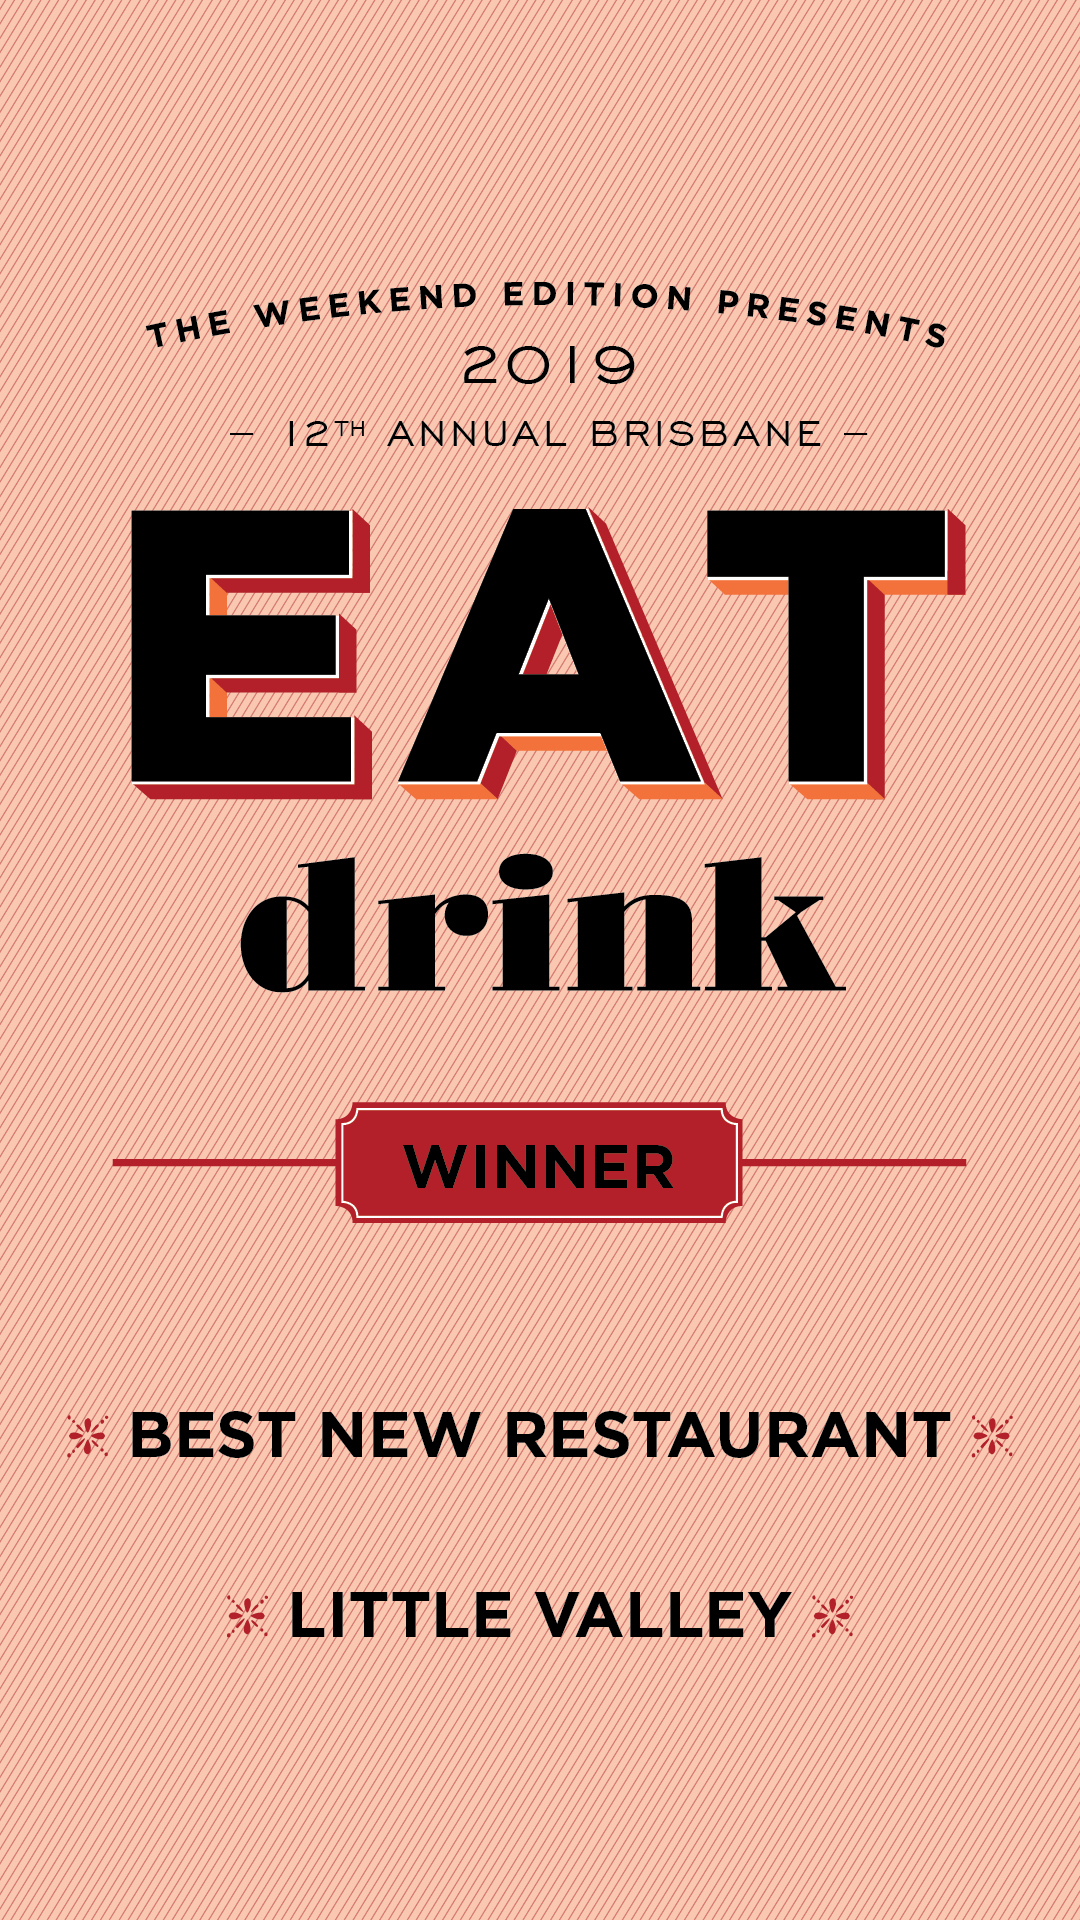 Here's a few that we'd like to extend our congratulations to. - > LONgTIME - Best Restaurant> Gauge - Best Restaurant (Runner Up)> Gerard's Bistro - Best Restaurant (Runner Up)> Savile Row - Best Bar (Runner Up)> Hellenika - Best New Restaurant (Runner Up)> morningafter - Best Place For Breakfast> Happy Boy - Best Place For Dinner (Runner Up)